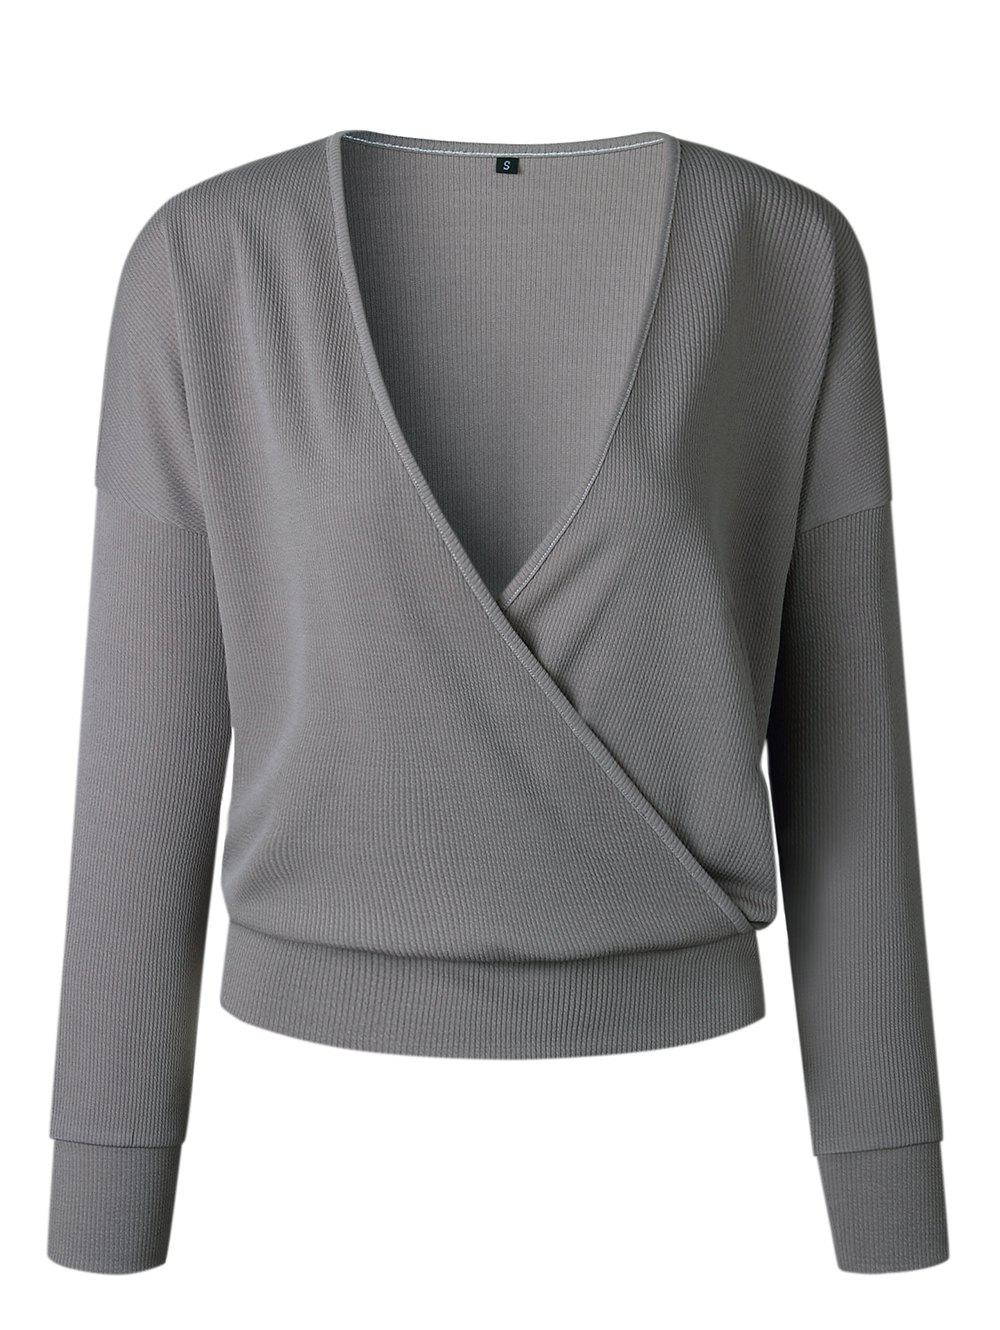 919737ccc2 Trendy Womens Ladies V Neck Jumper Ribbed Long Sleeve Sweater Crop Tops  Shirt